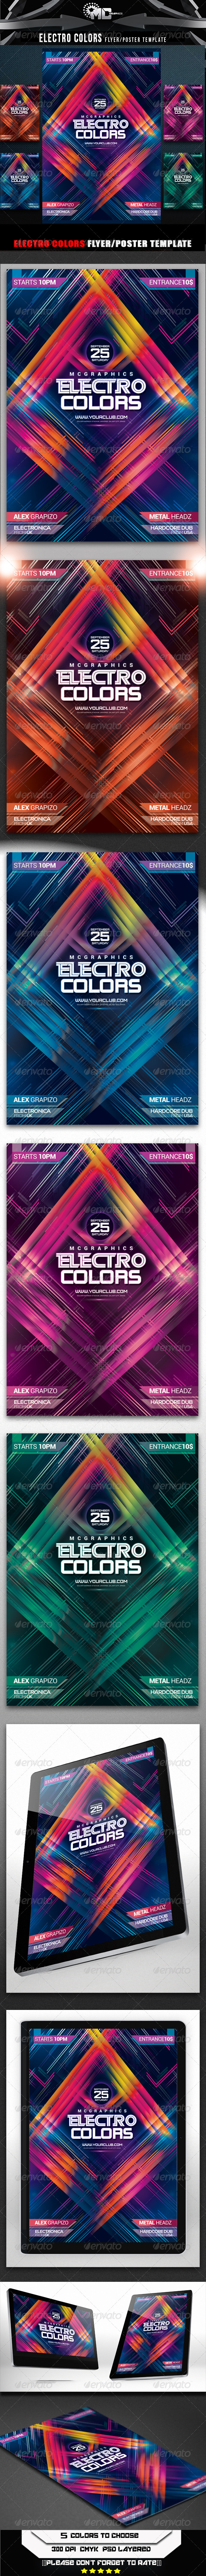 GraphicRiver Electro Colors Flyer Poster Template 8545314